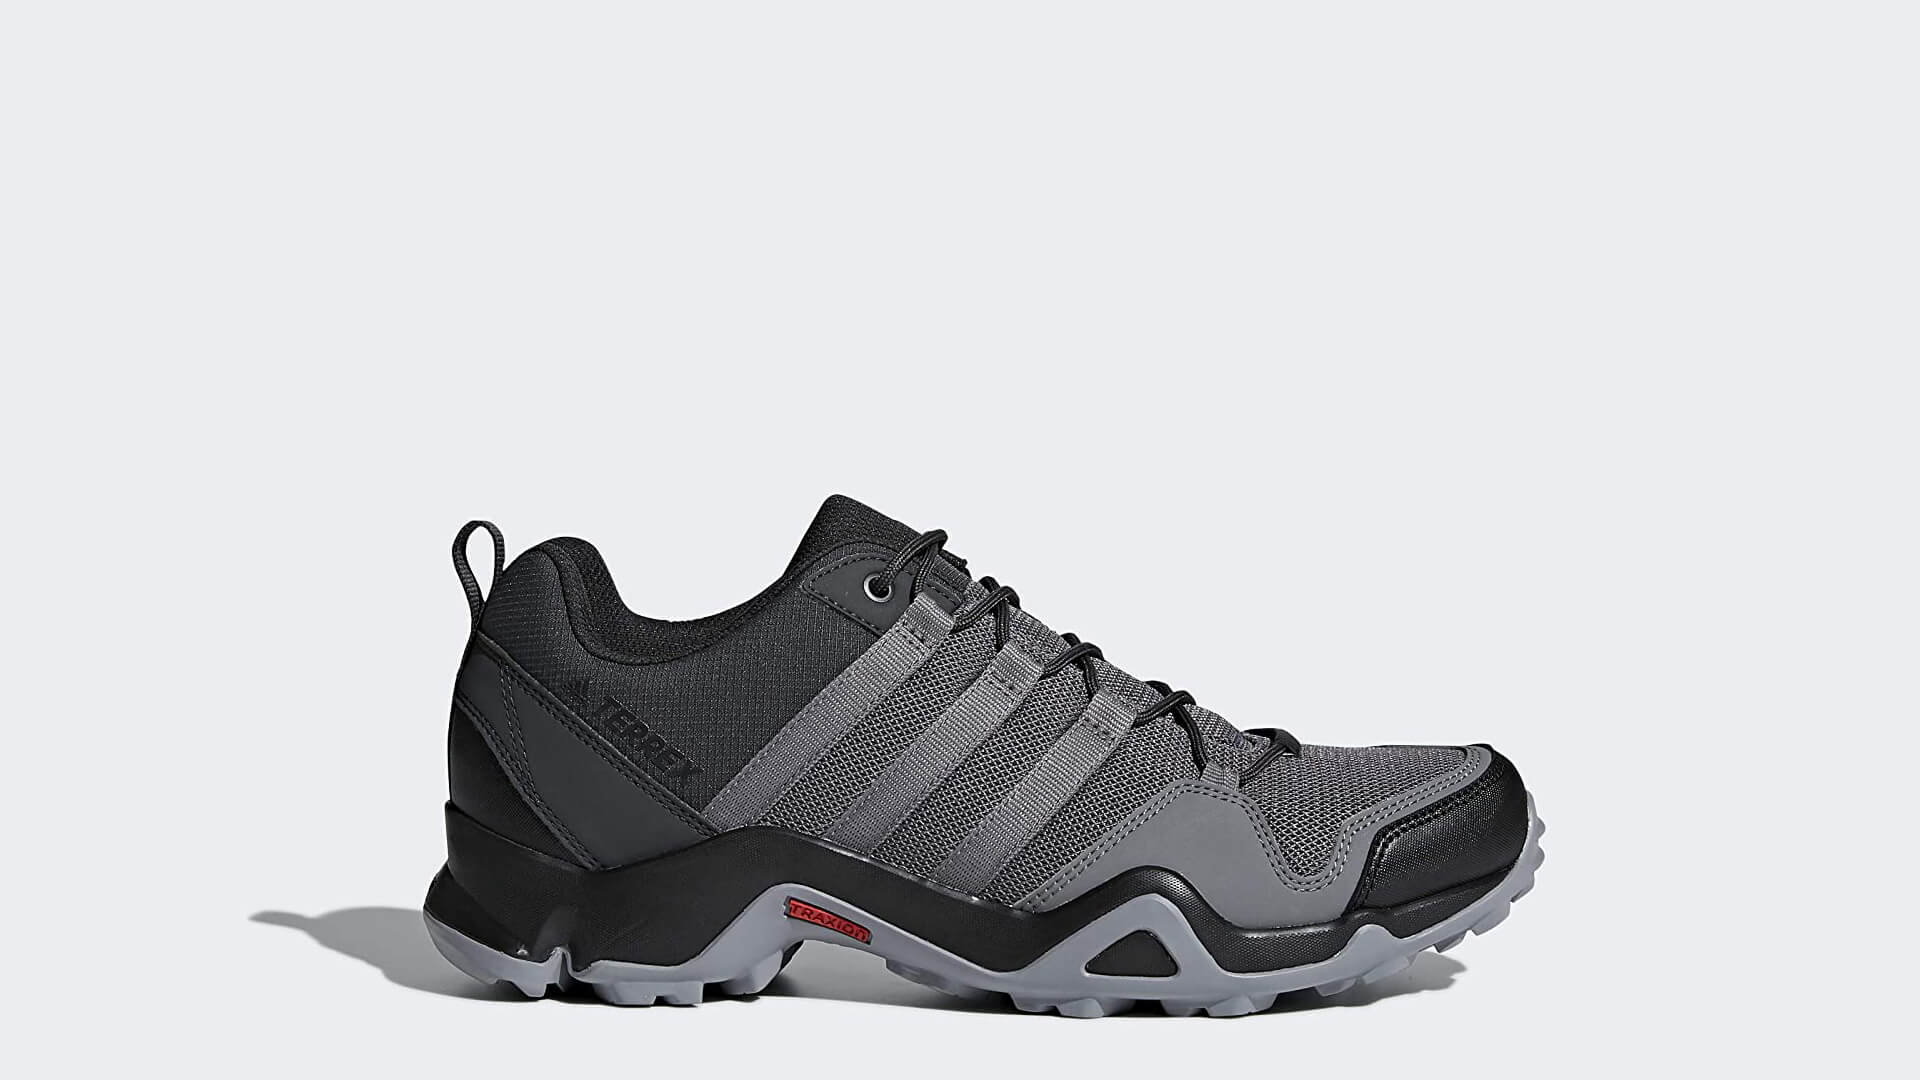 best gore tex running shoes image